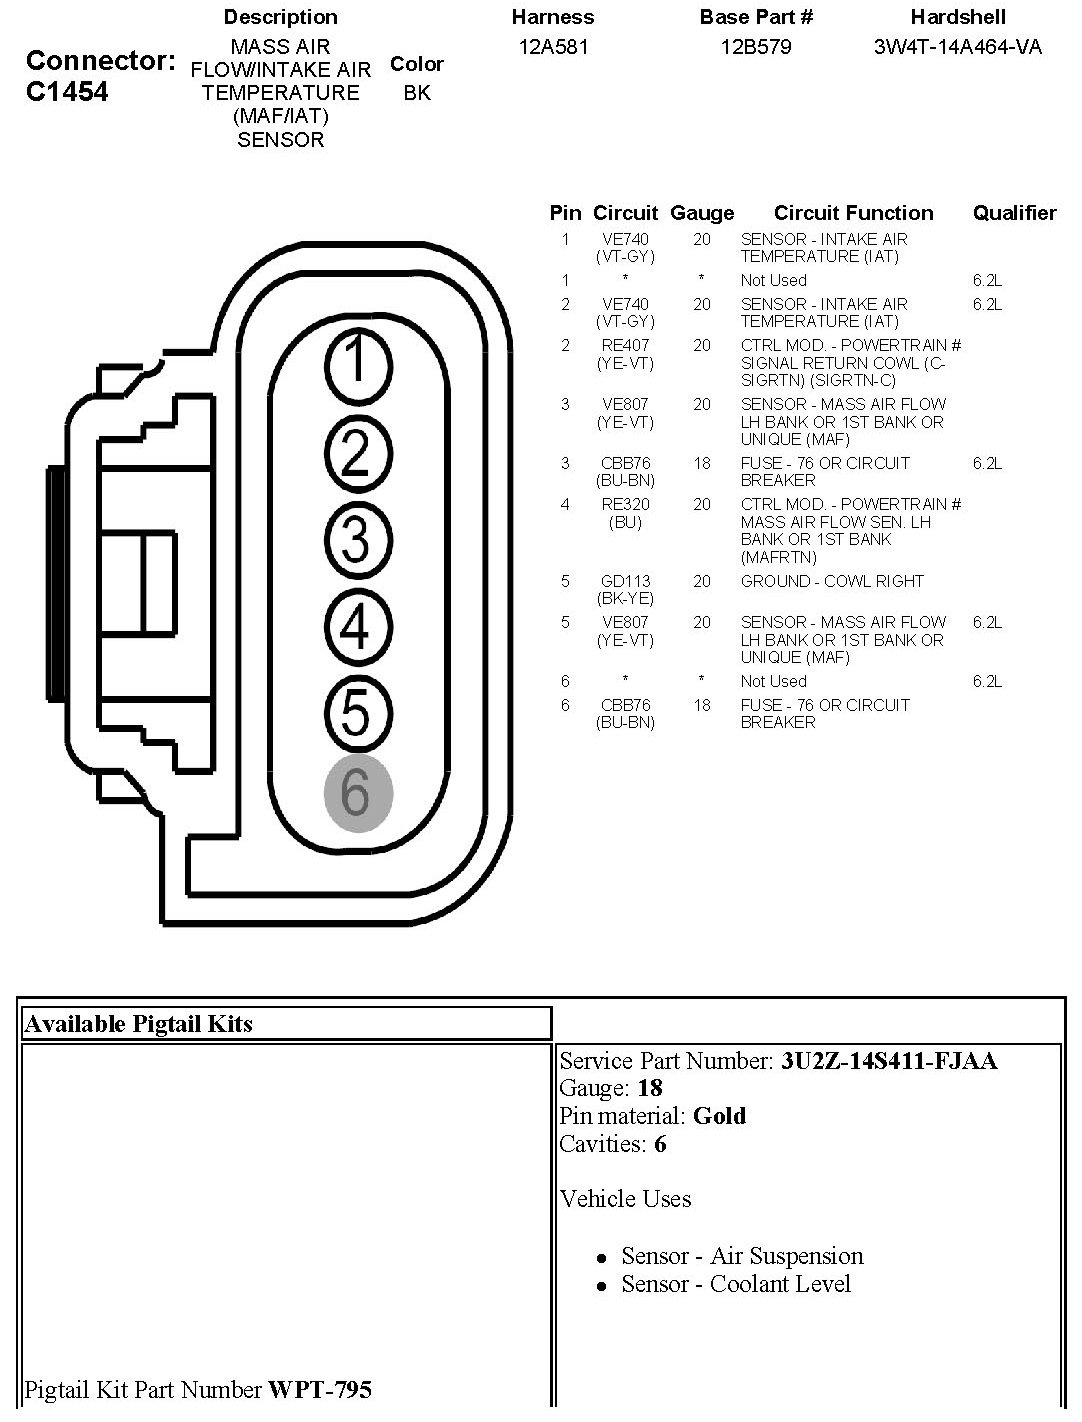 2004 ford f150 5 4 pcm wiring diagram for push button start vivresaville 6 liter engine 2009 get free image about